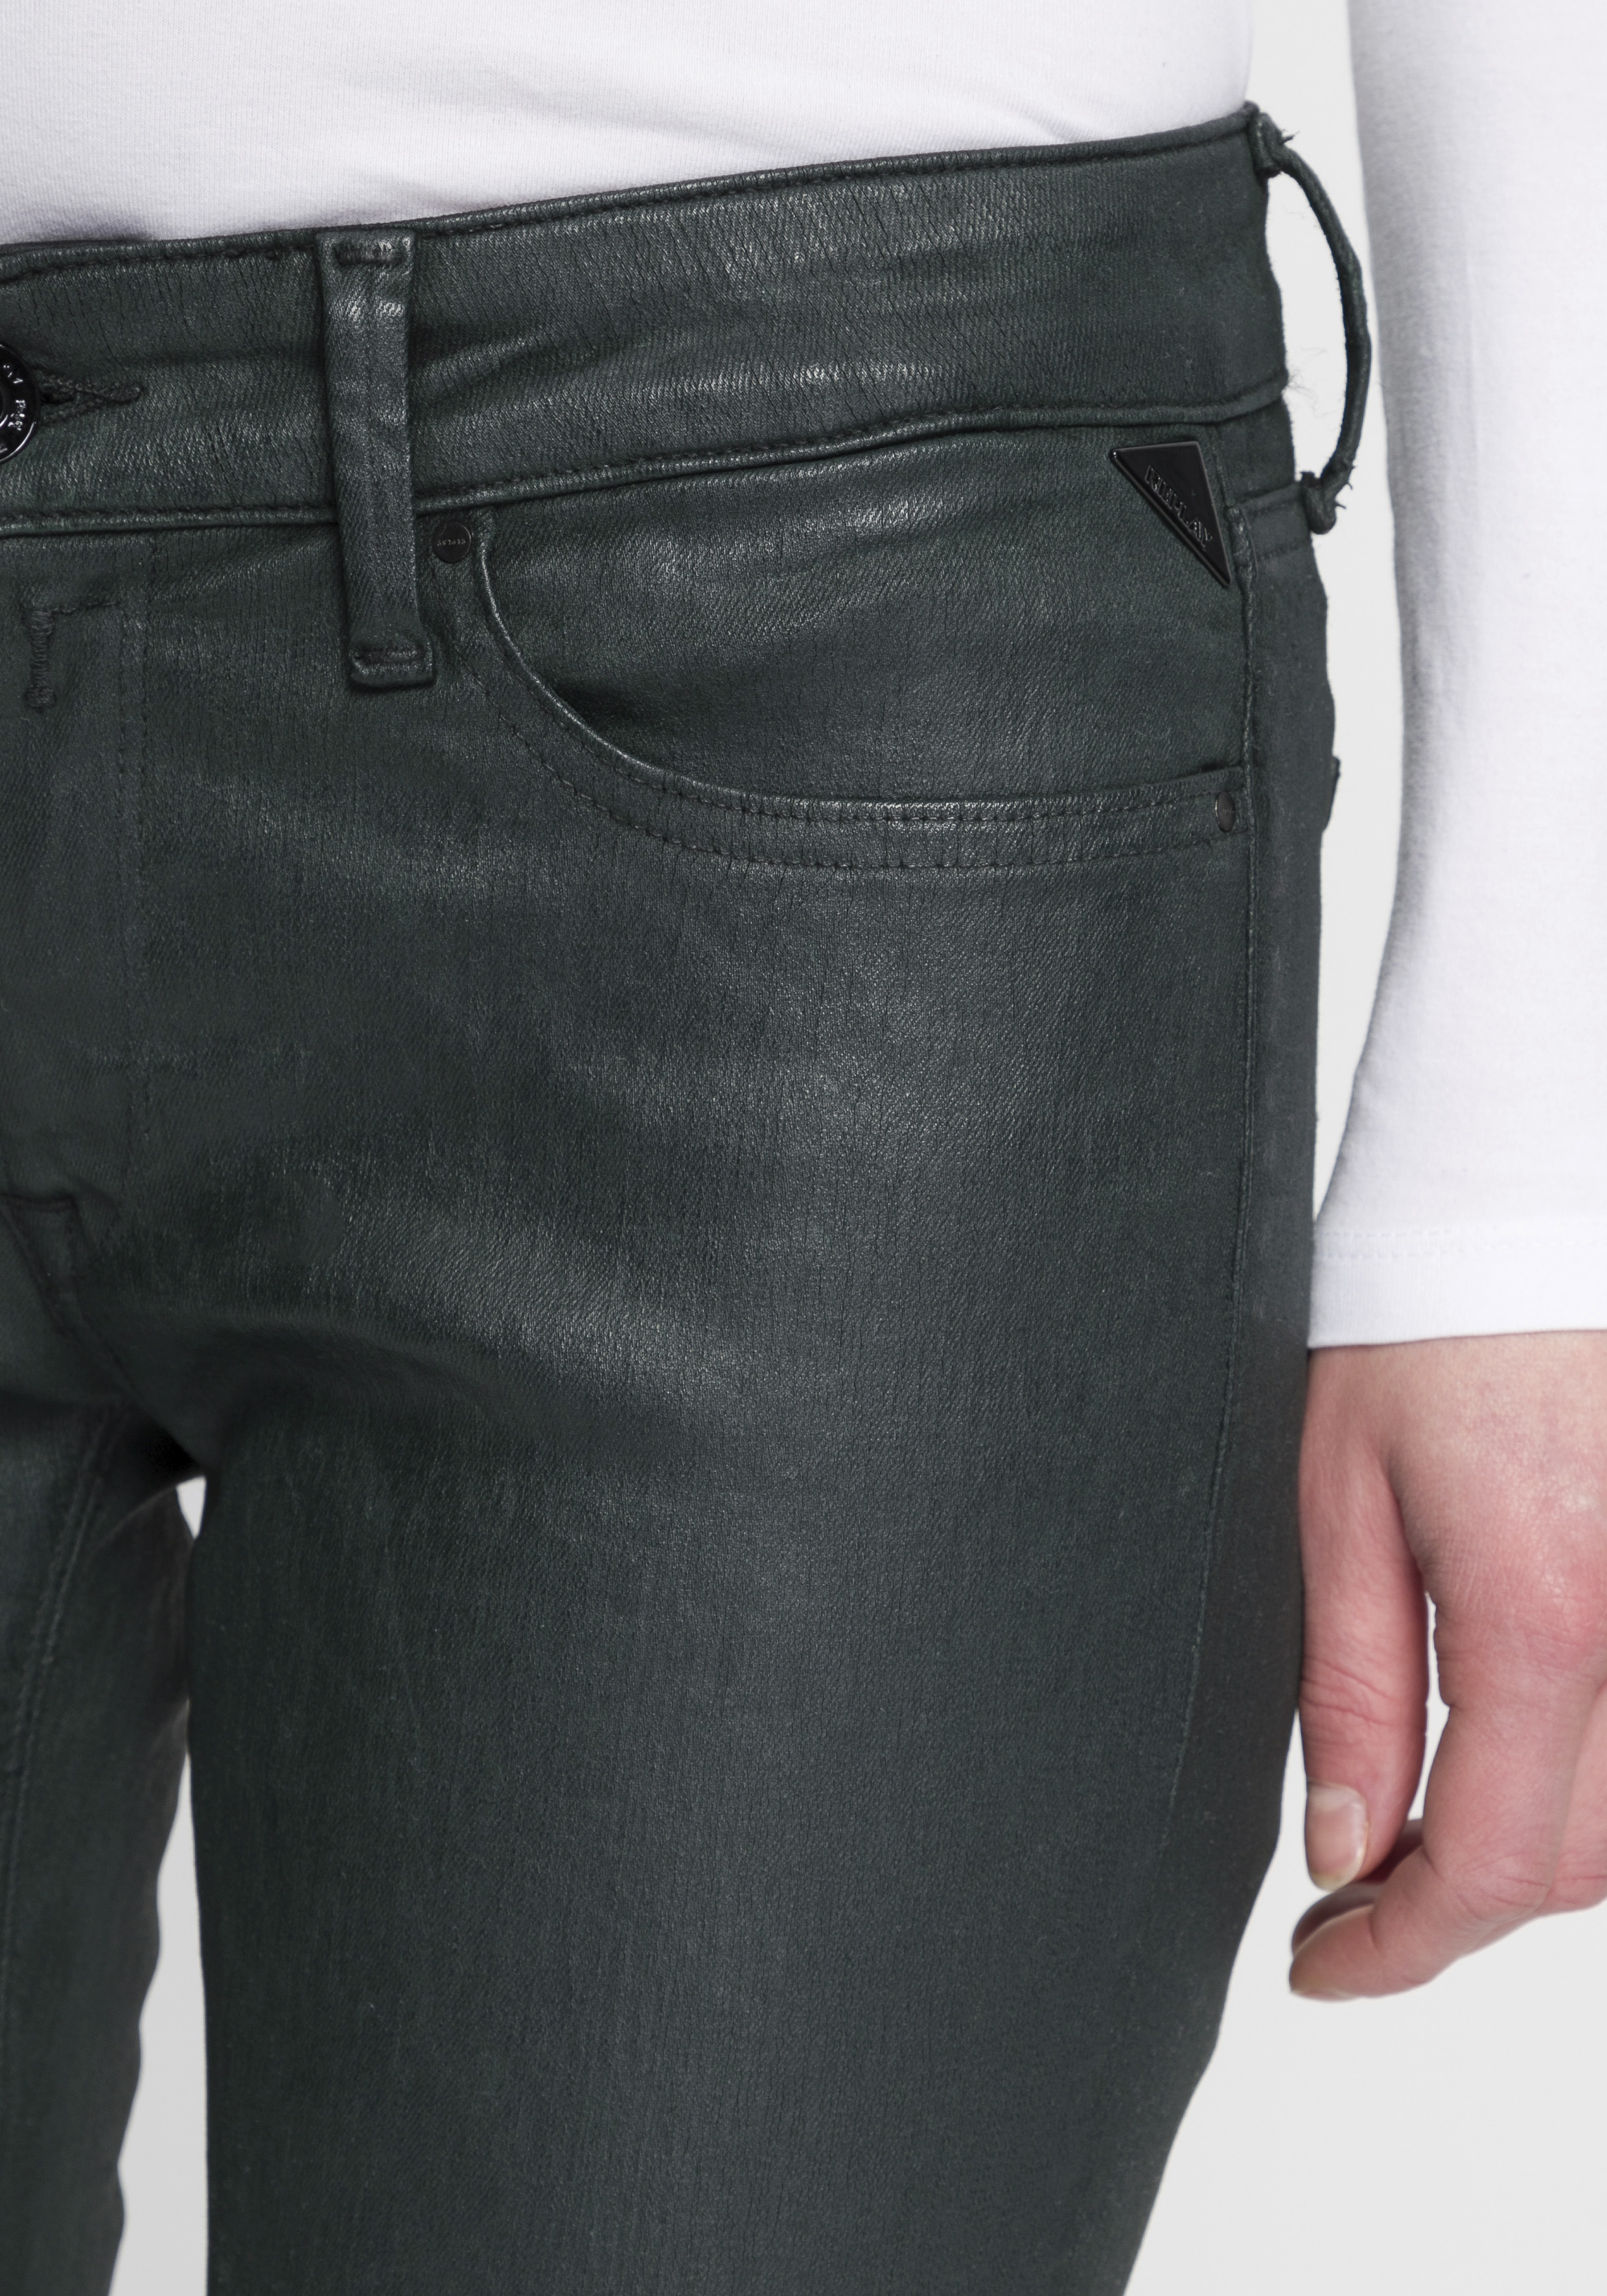 replay -  Skinny-fit-Jeans New Luz, coated Look mit leichtem Glanz